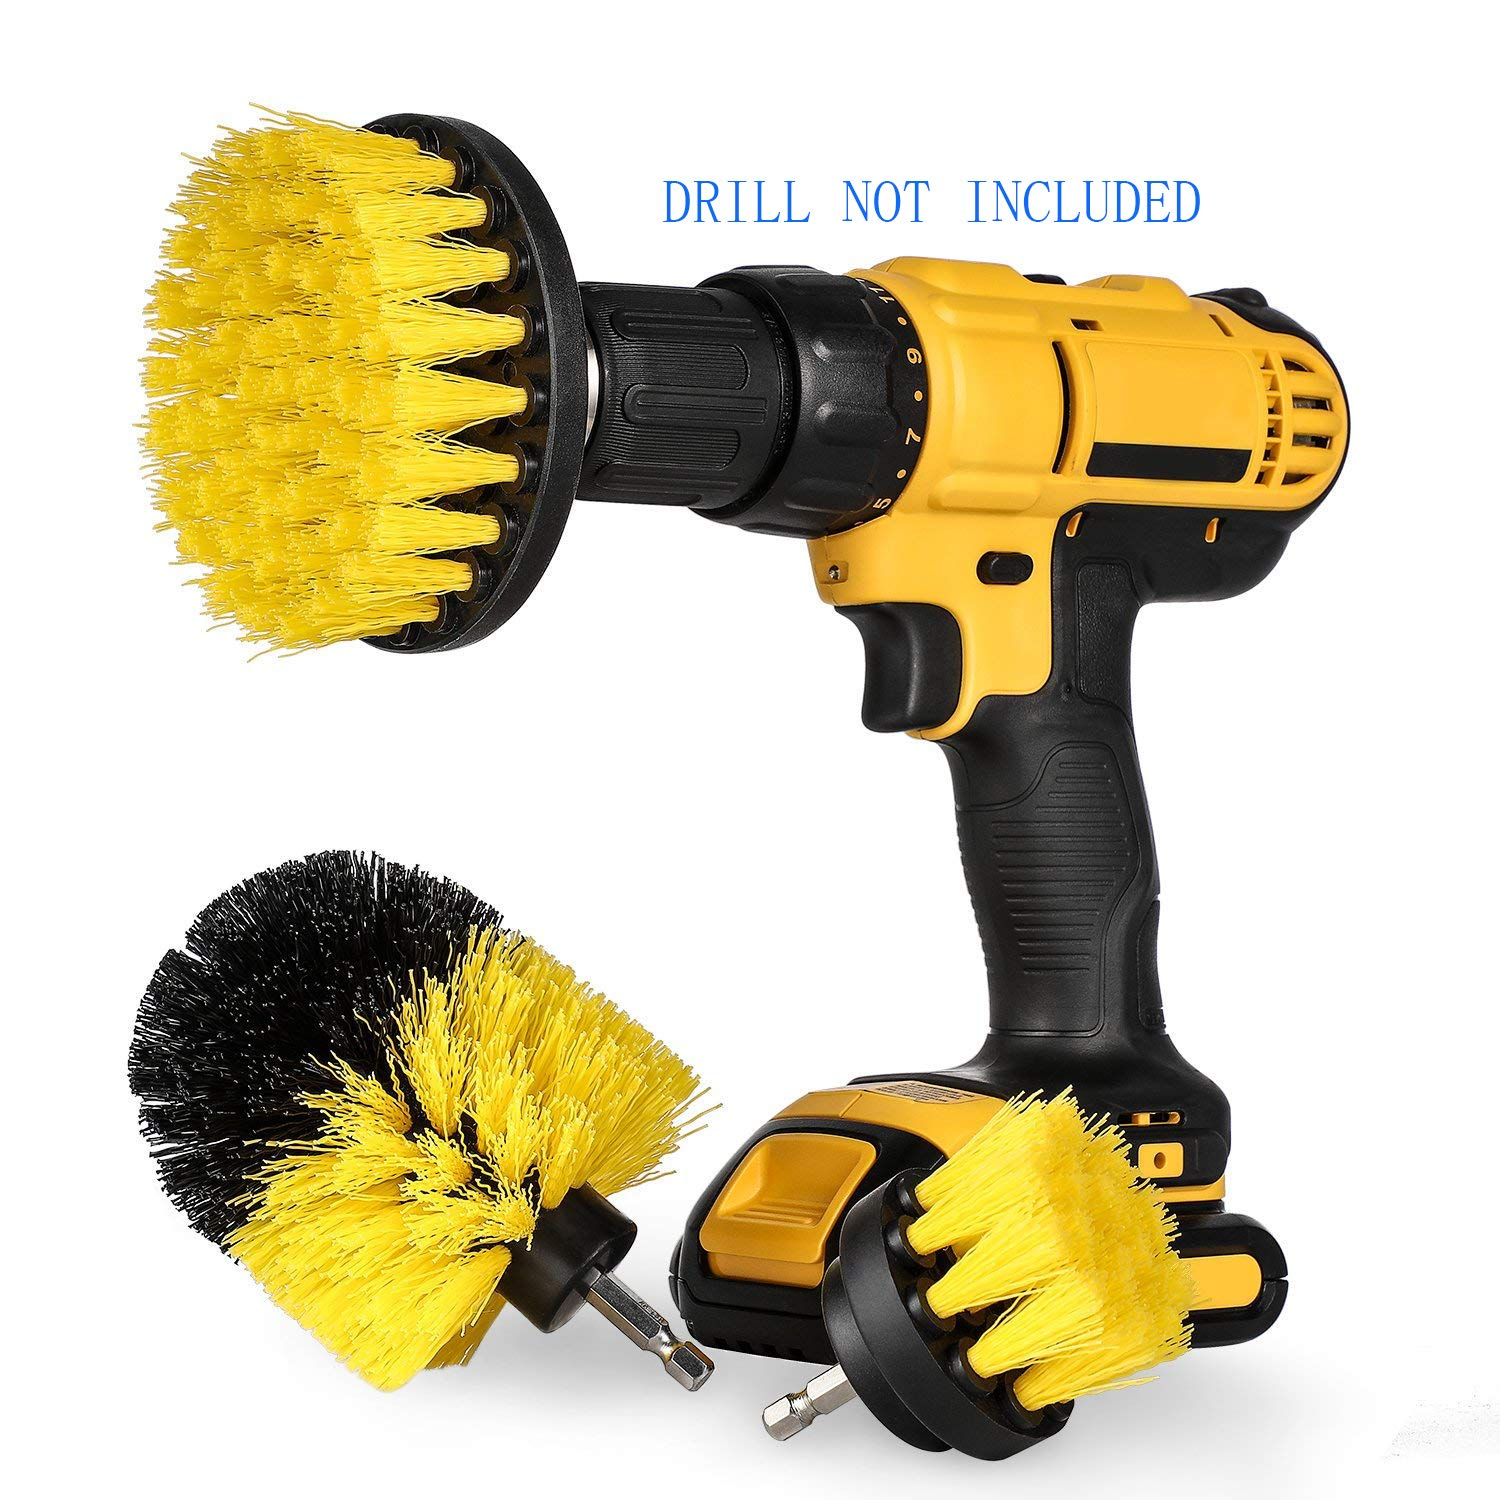 Drill Brush Power Scrubber Brush for Drill Attachment Kits Power Cleaning Brush High Speed and More Effective for Cleaning Bathroom Surfaces, Tile and Grout, Hard Water Stains, Rust-3 Packs